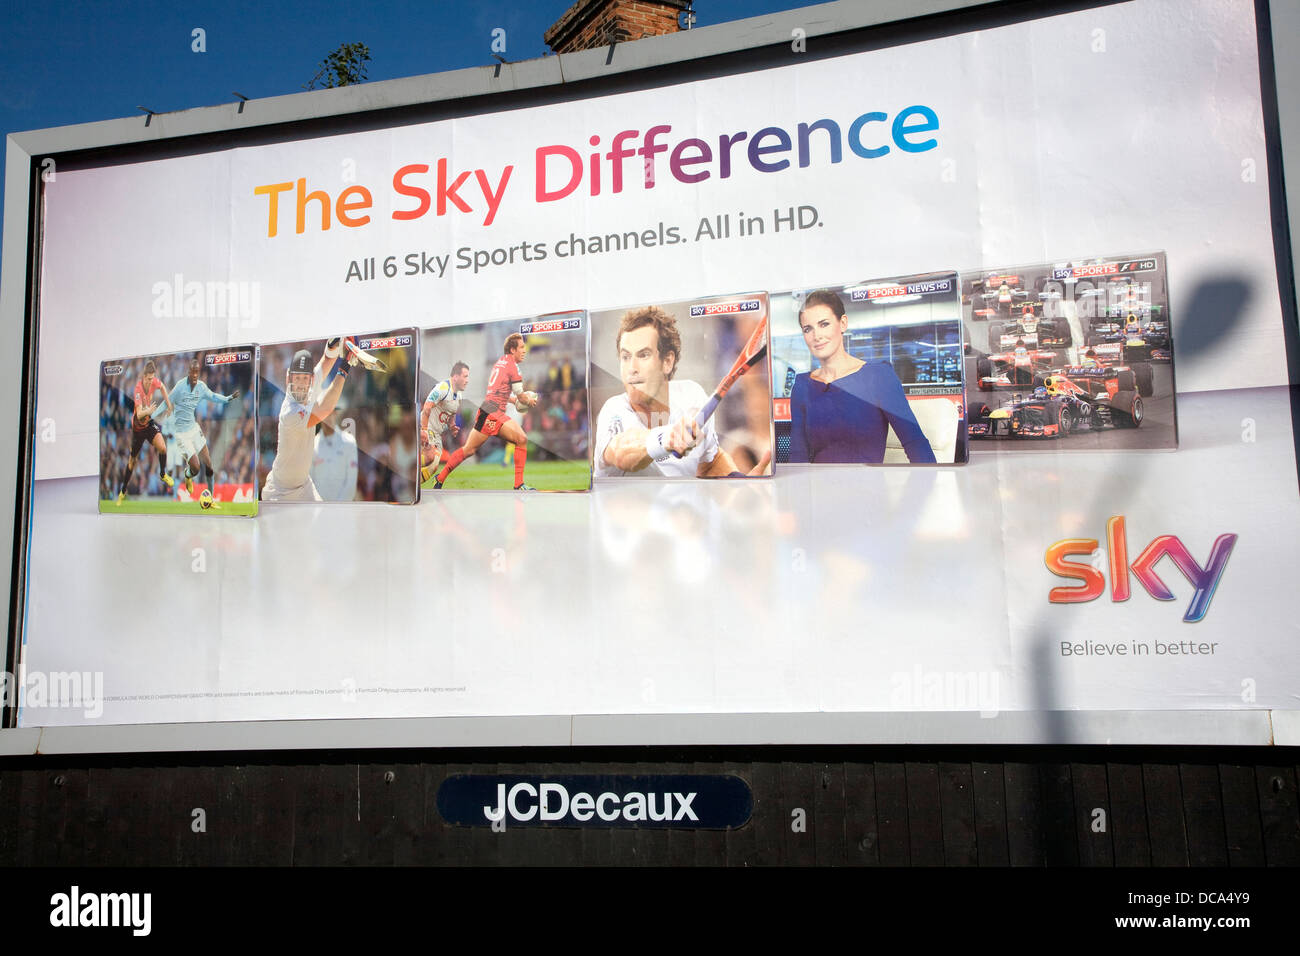 The Sky difference advertising billboard poster - Stock Image